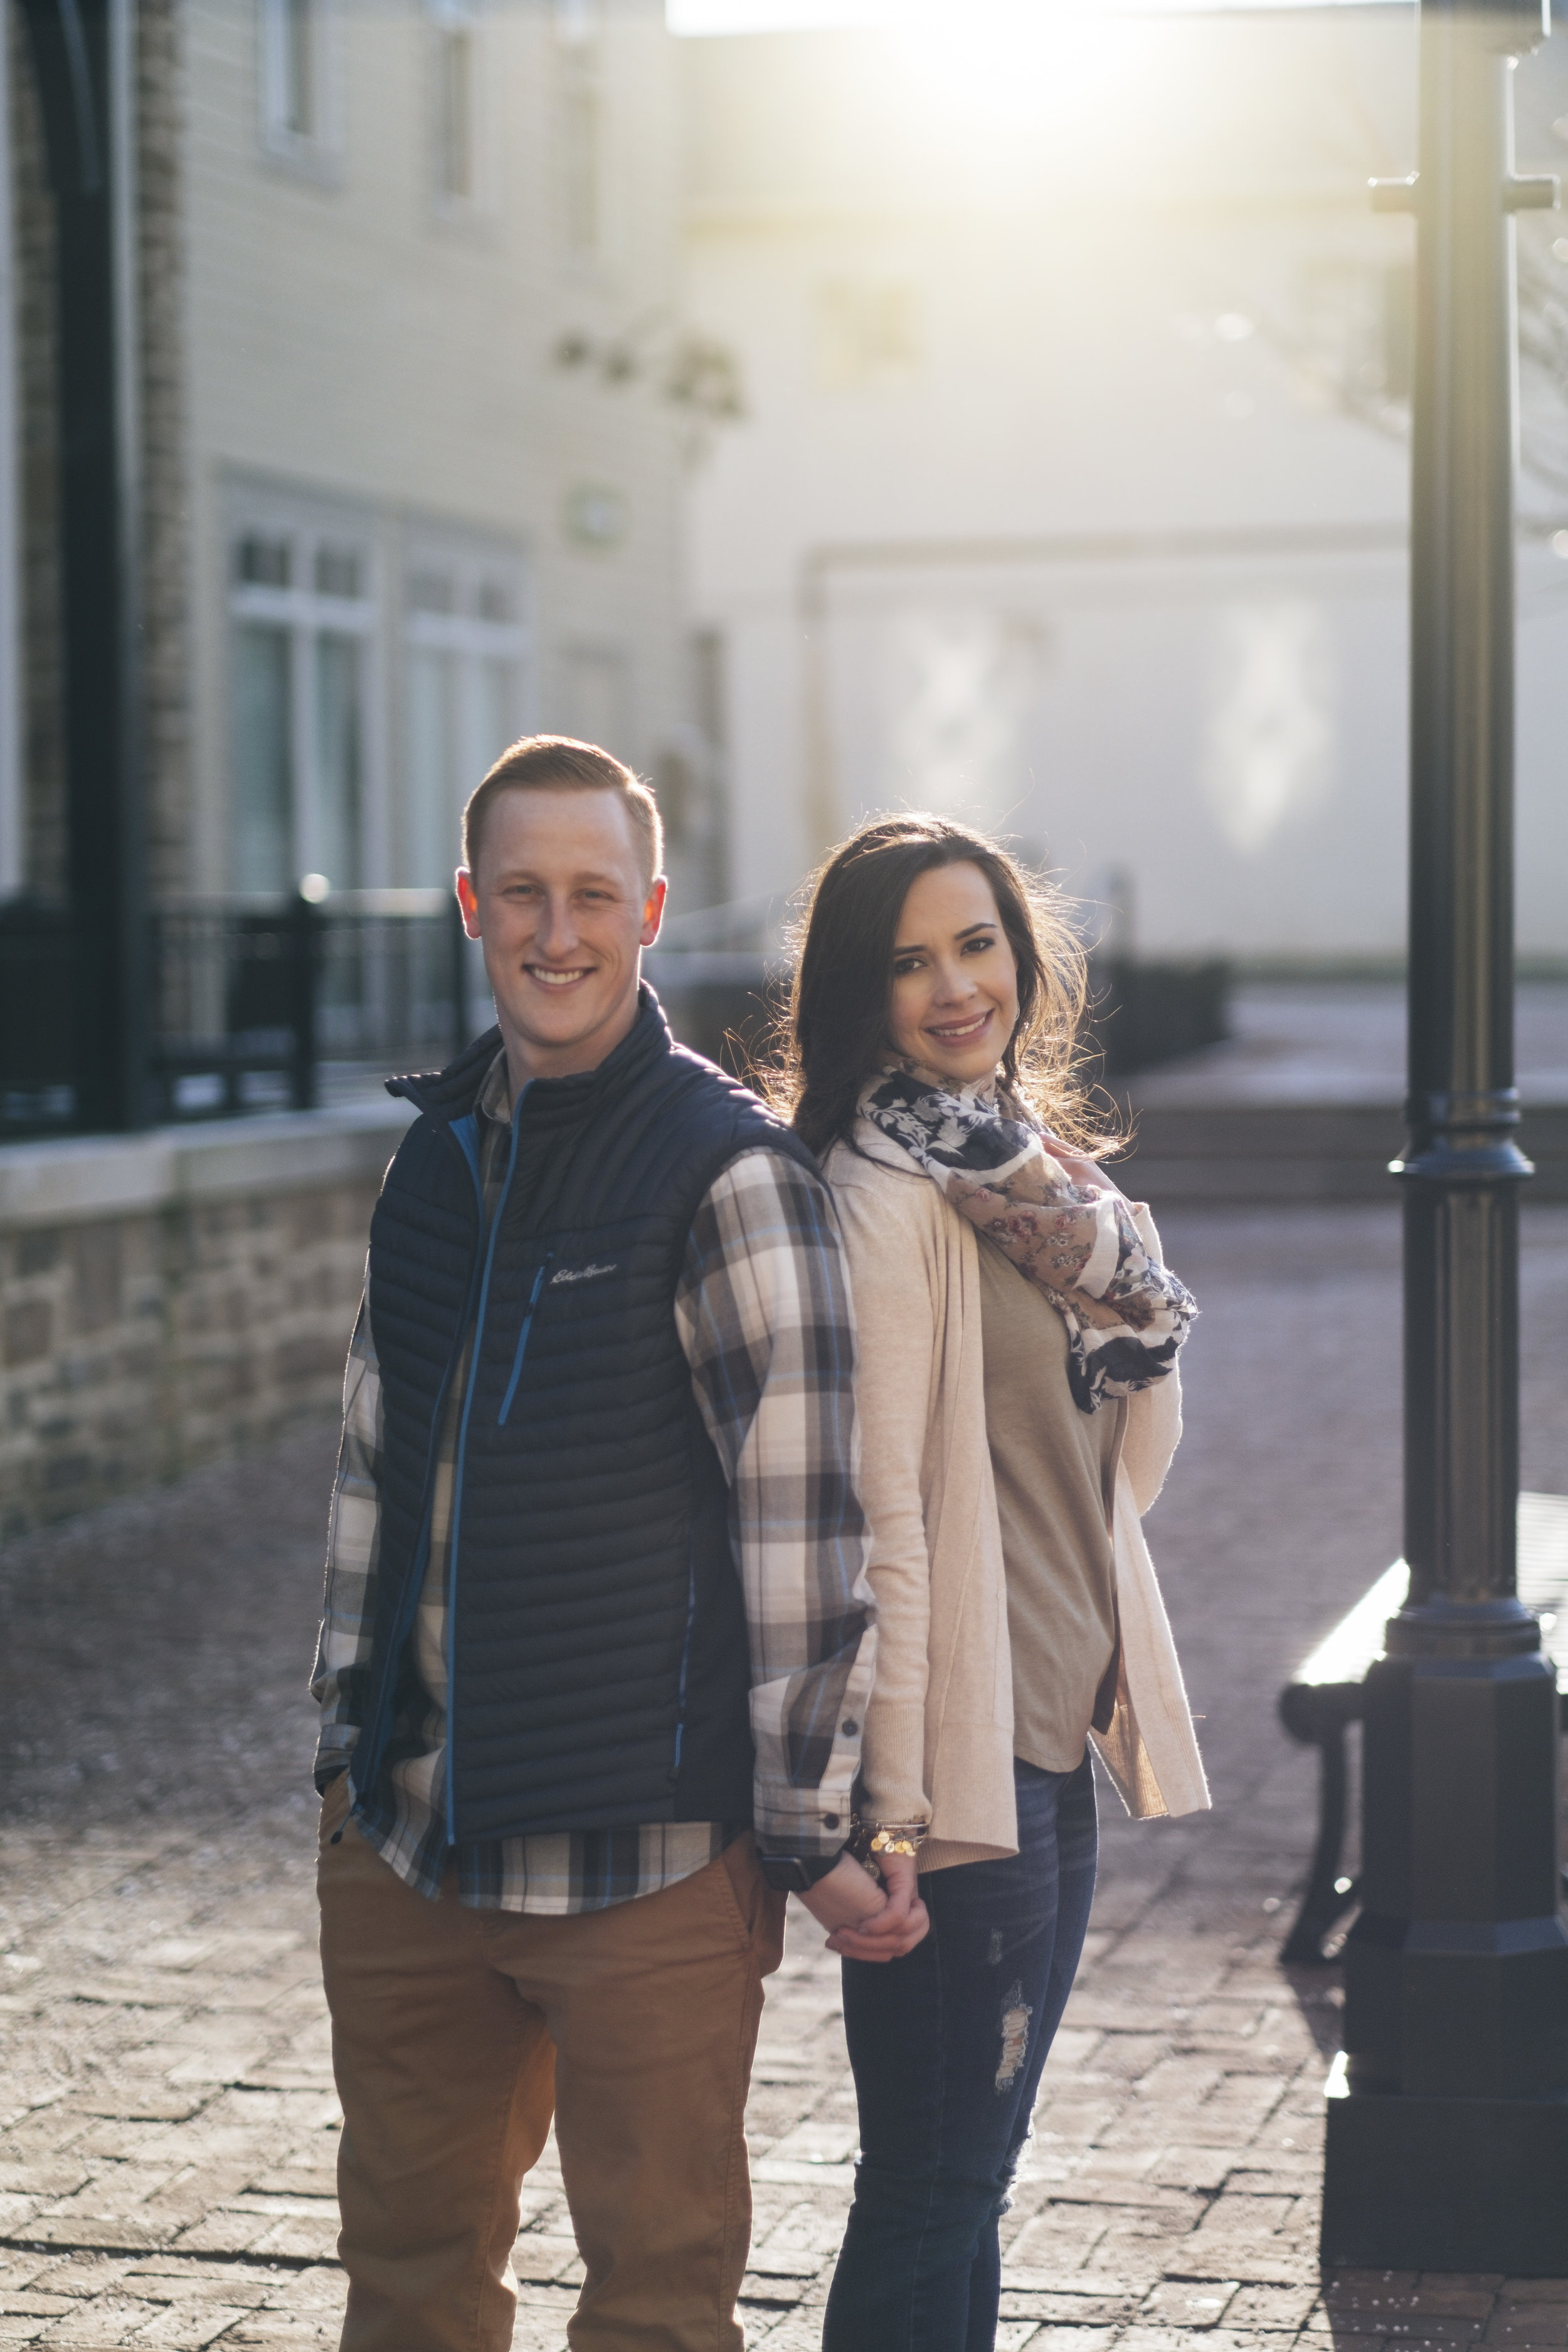 Engagement photography in Columbus, Ohio during the winter.